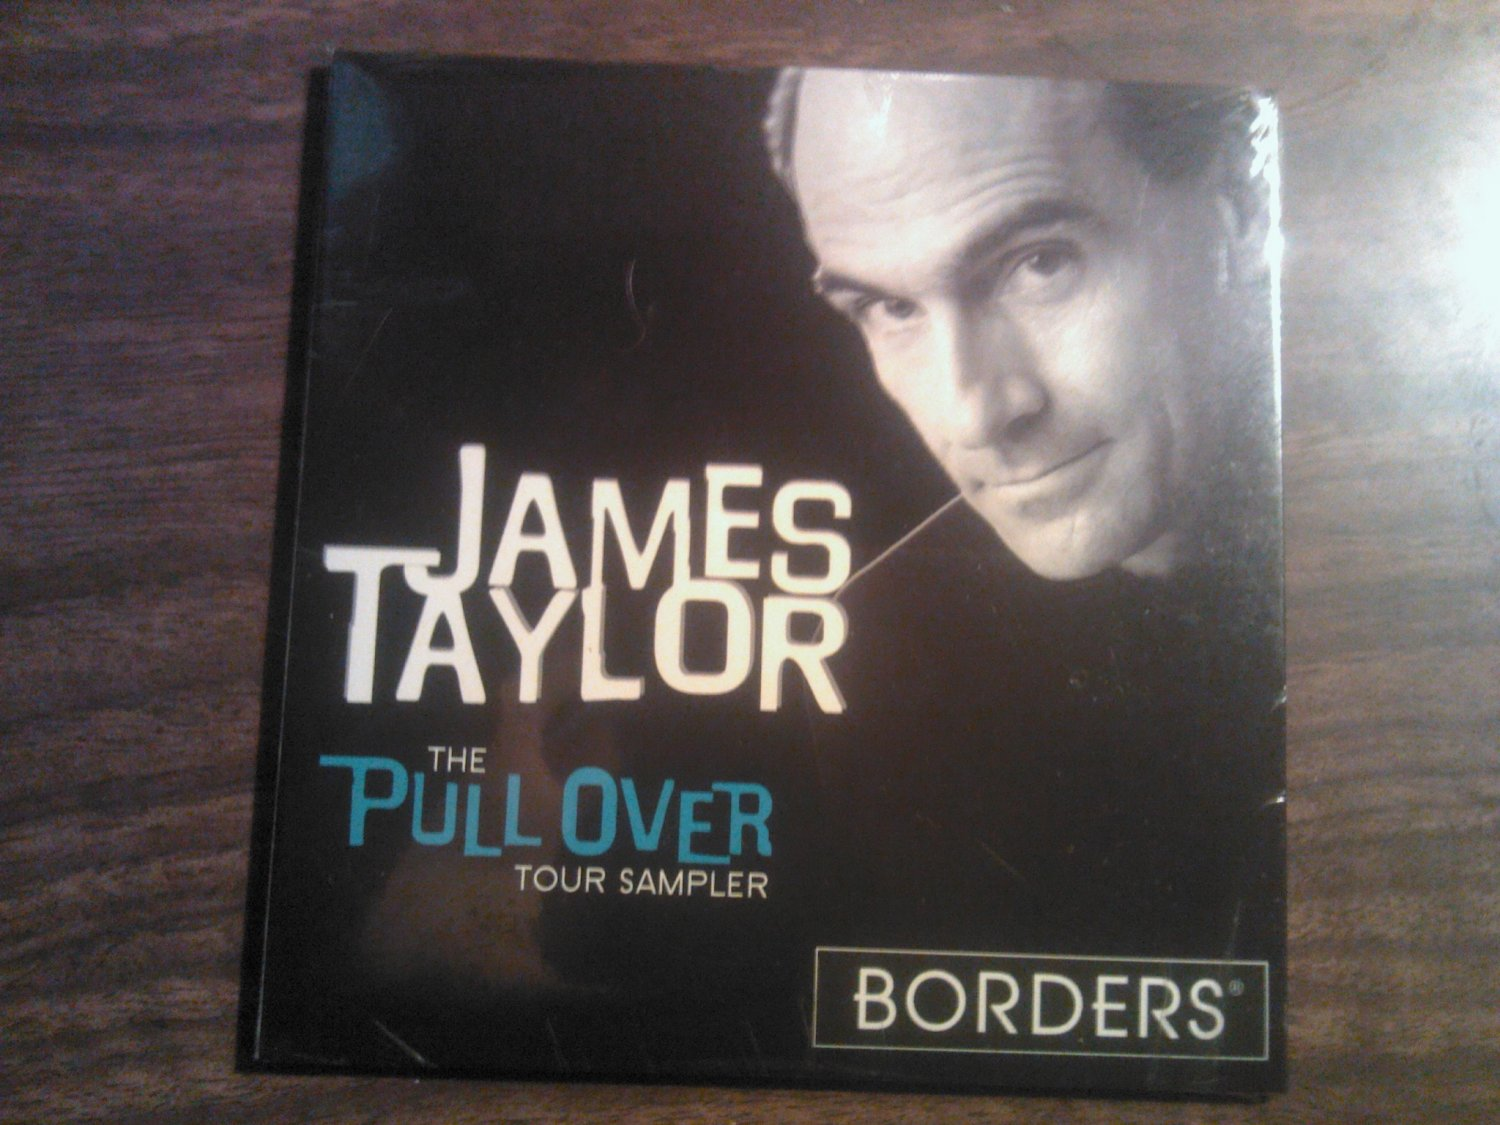 CD JAMES TAYLOR Pull Over Tour Sampler SEALED PROMO